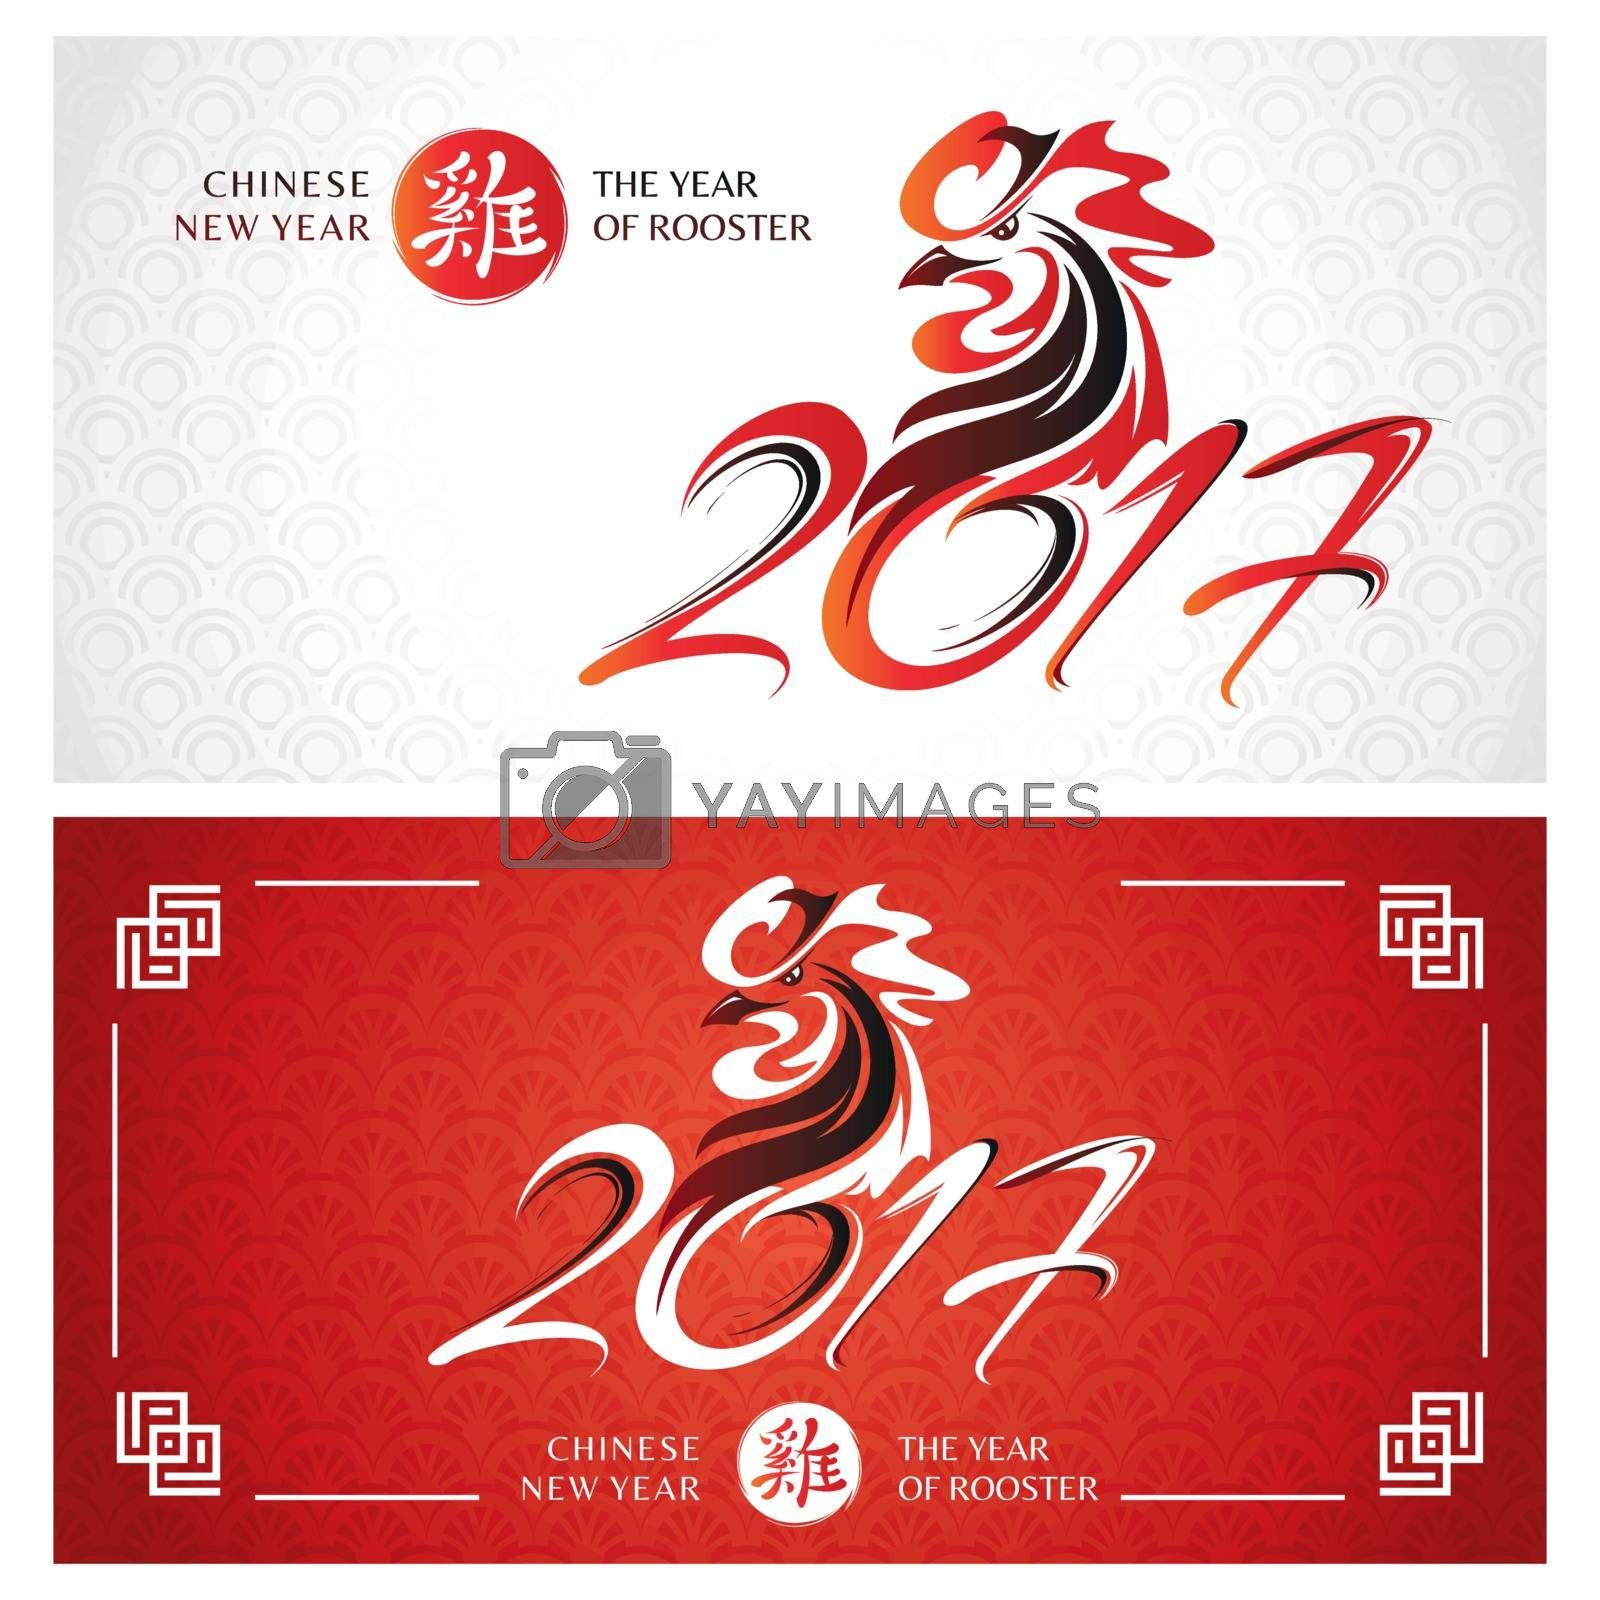 Chinese new year greeting cards with rooster. Vector illustration